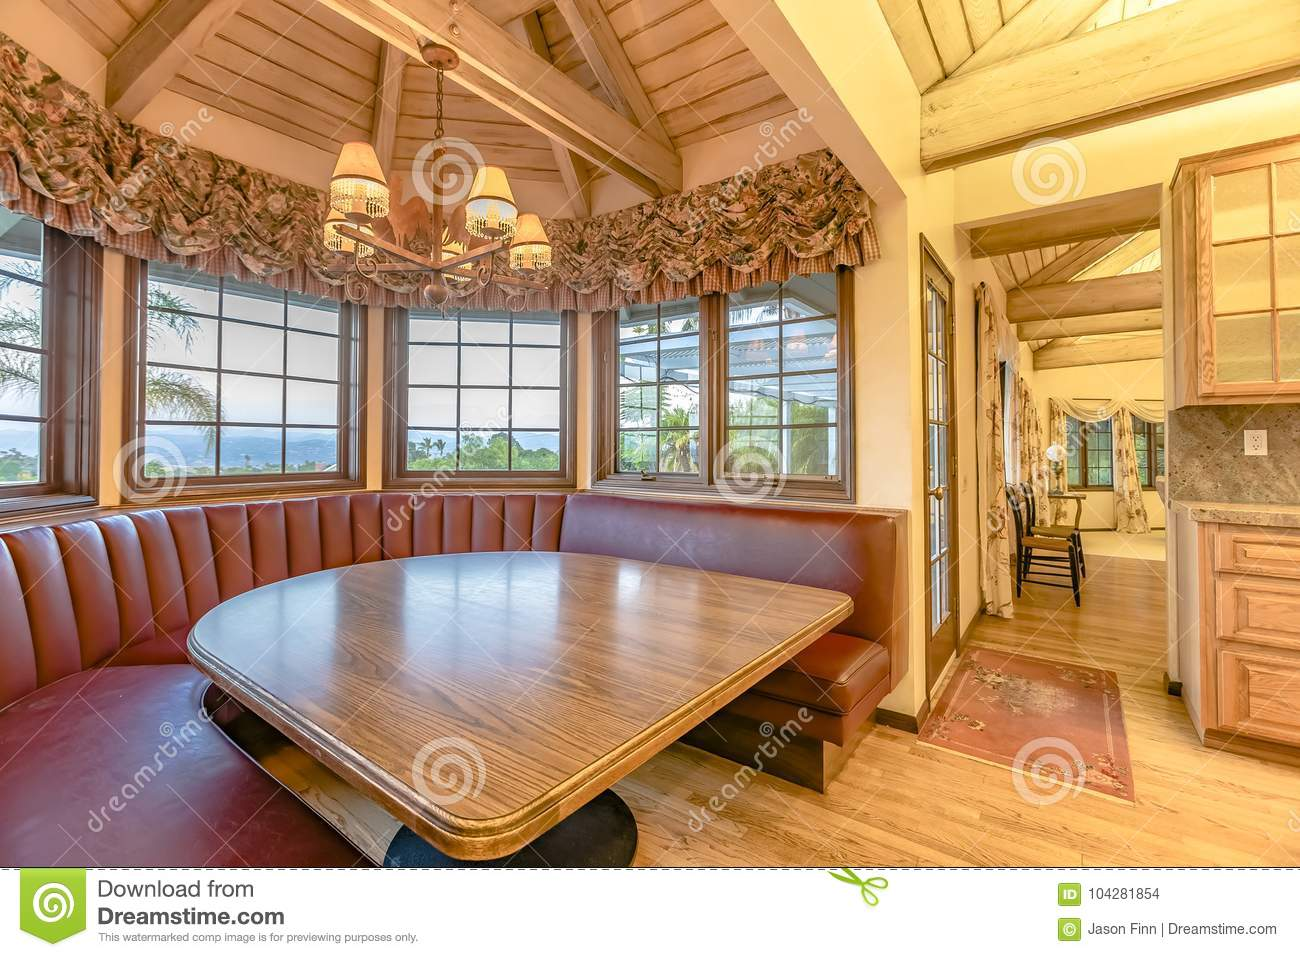 Luxurious Kitchen Table With Booth Style Seating Area In An Upsc - Restaurant style kitchen table